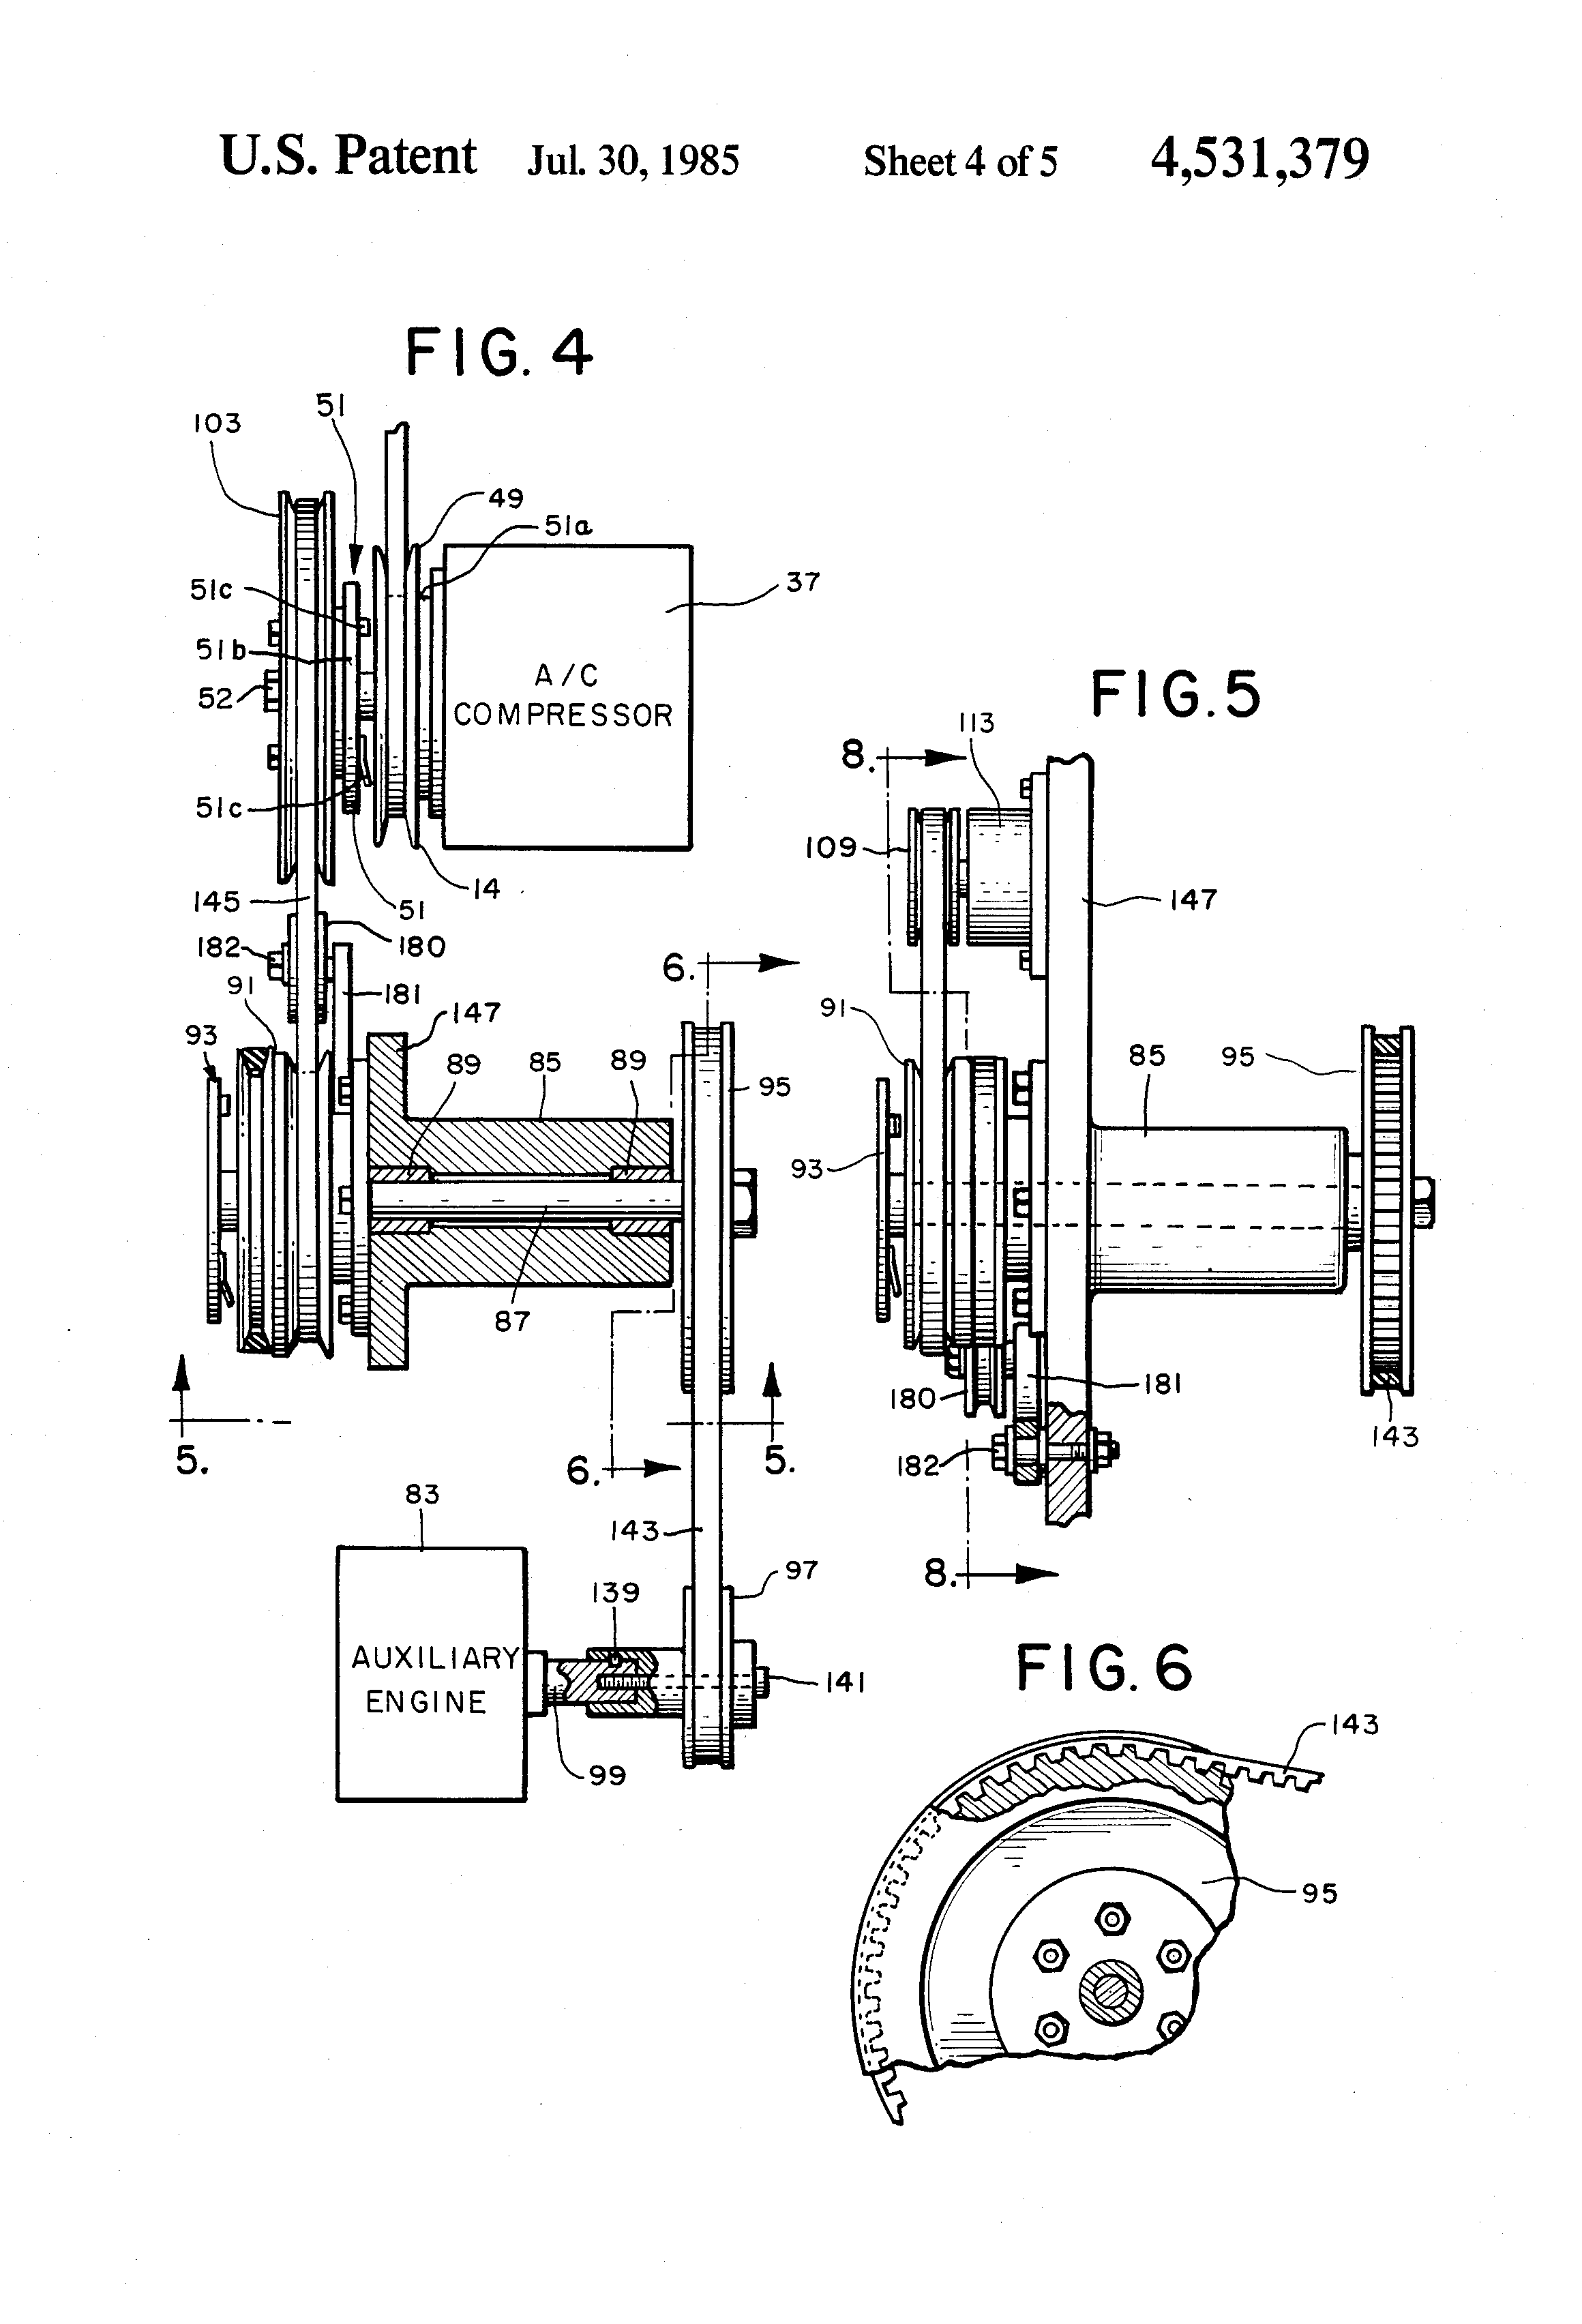 power system for vehicle air conditioner and heater   Patents #3E3E3E